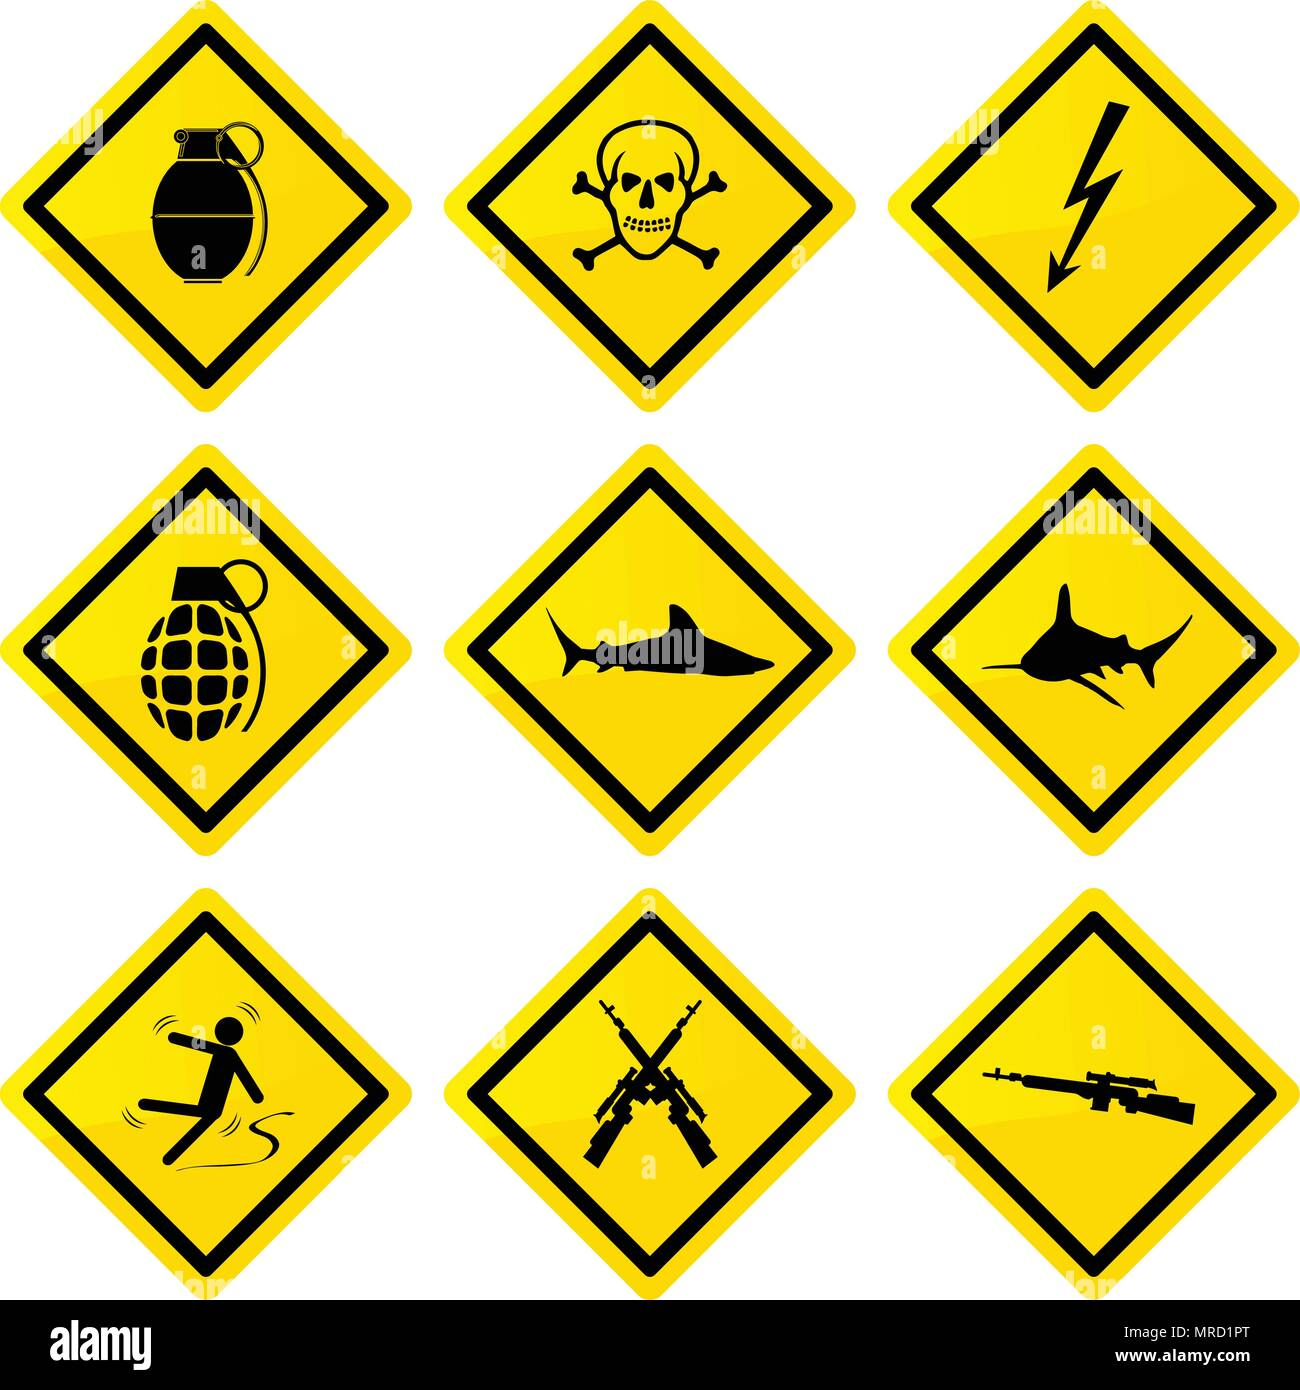 collection of yellow rectangle danger signs vector illustration - Stock Vector